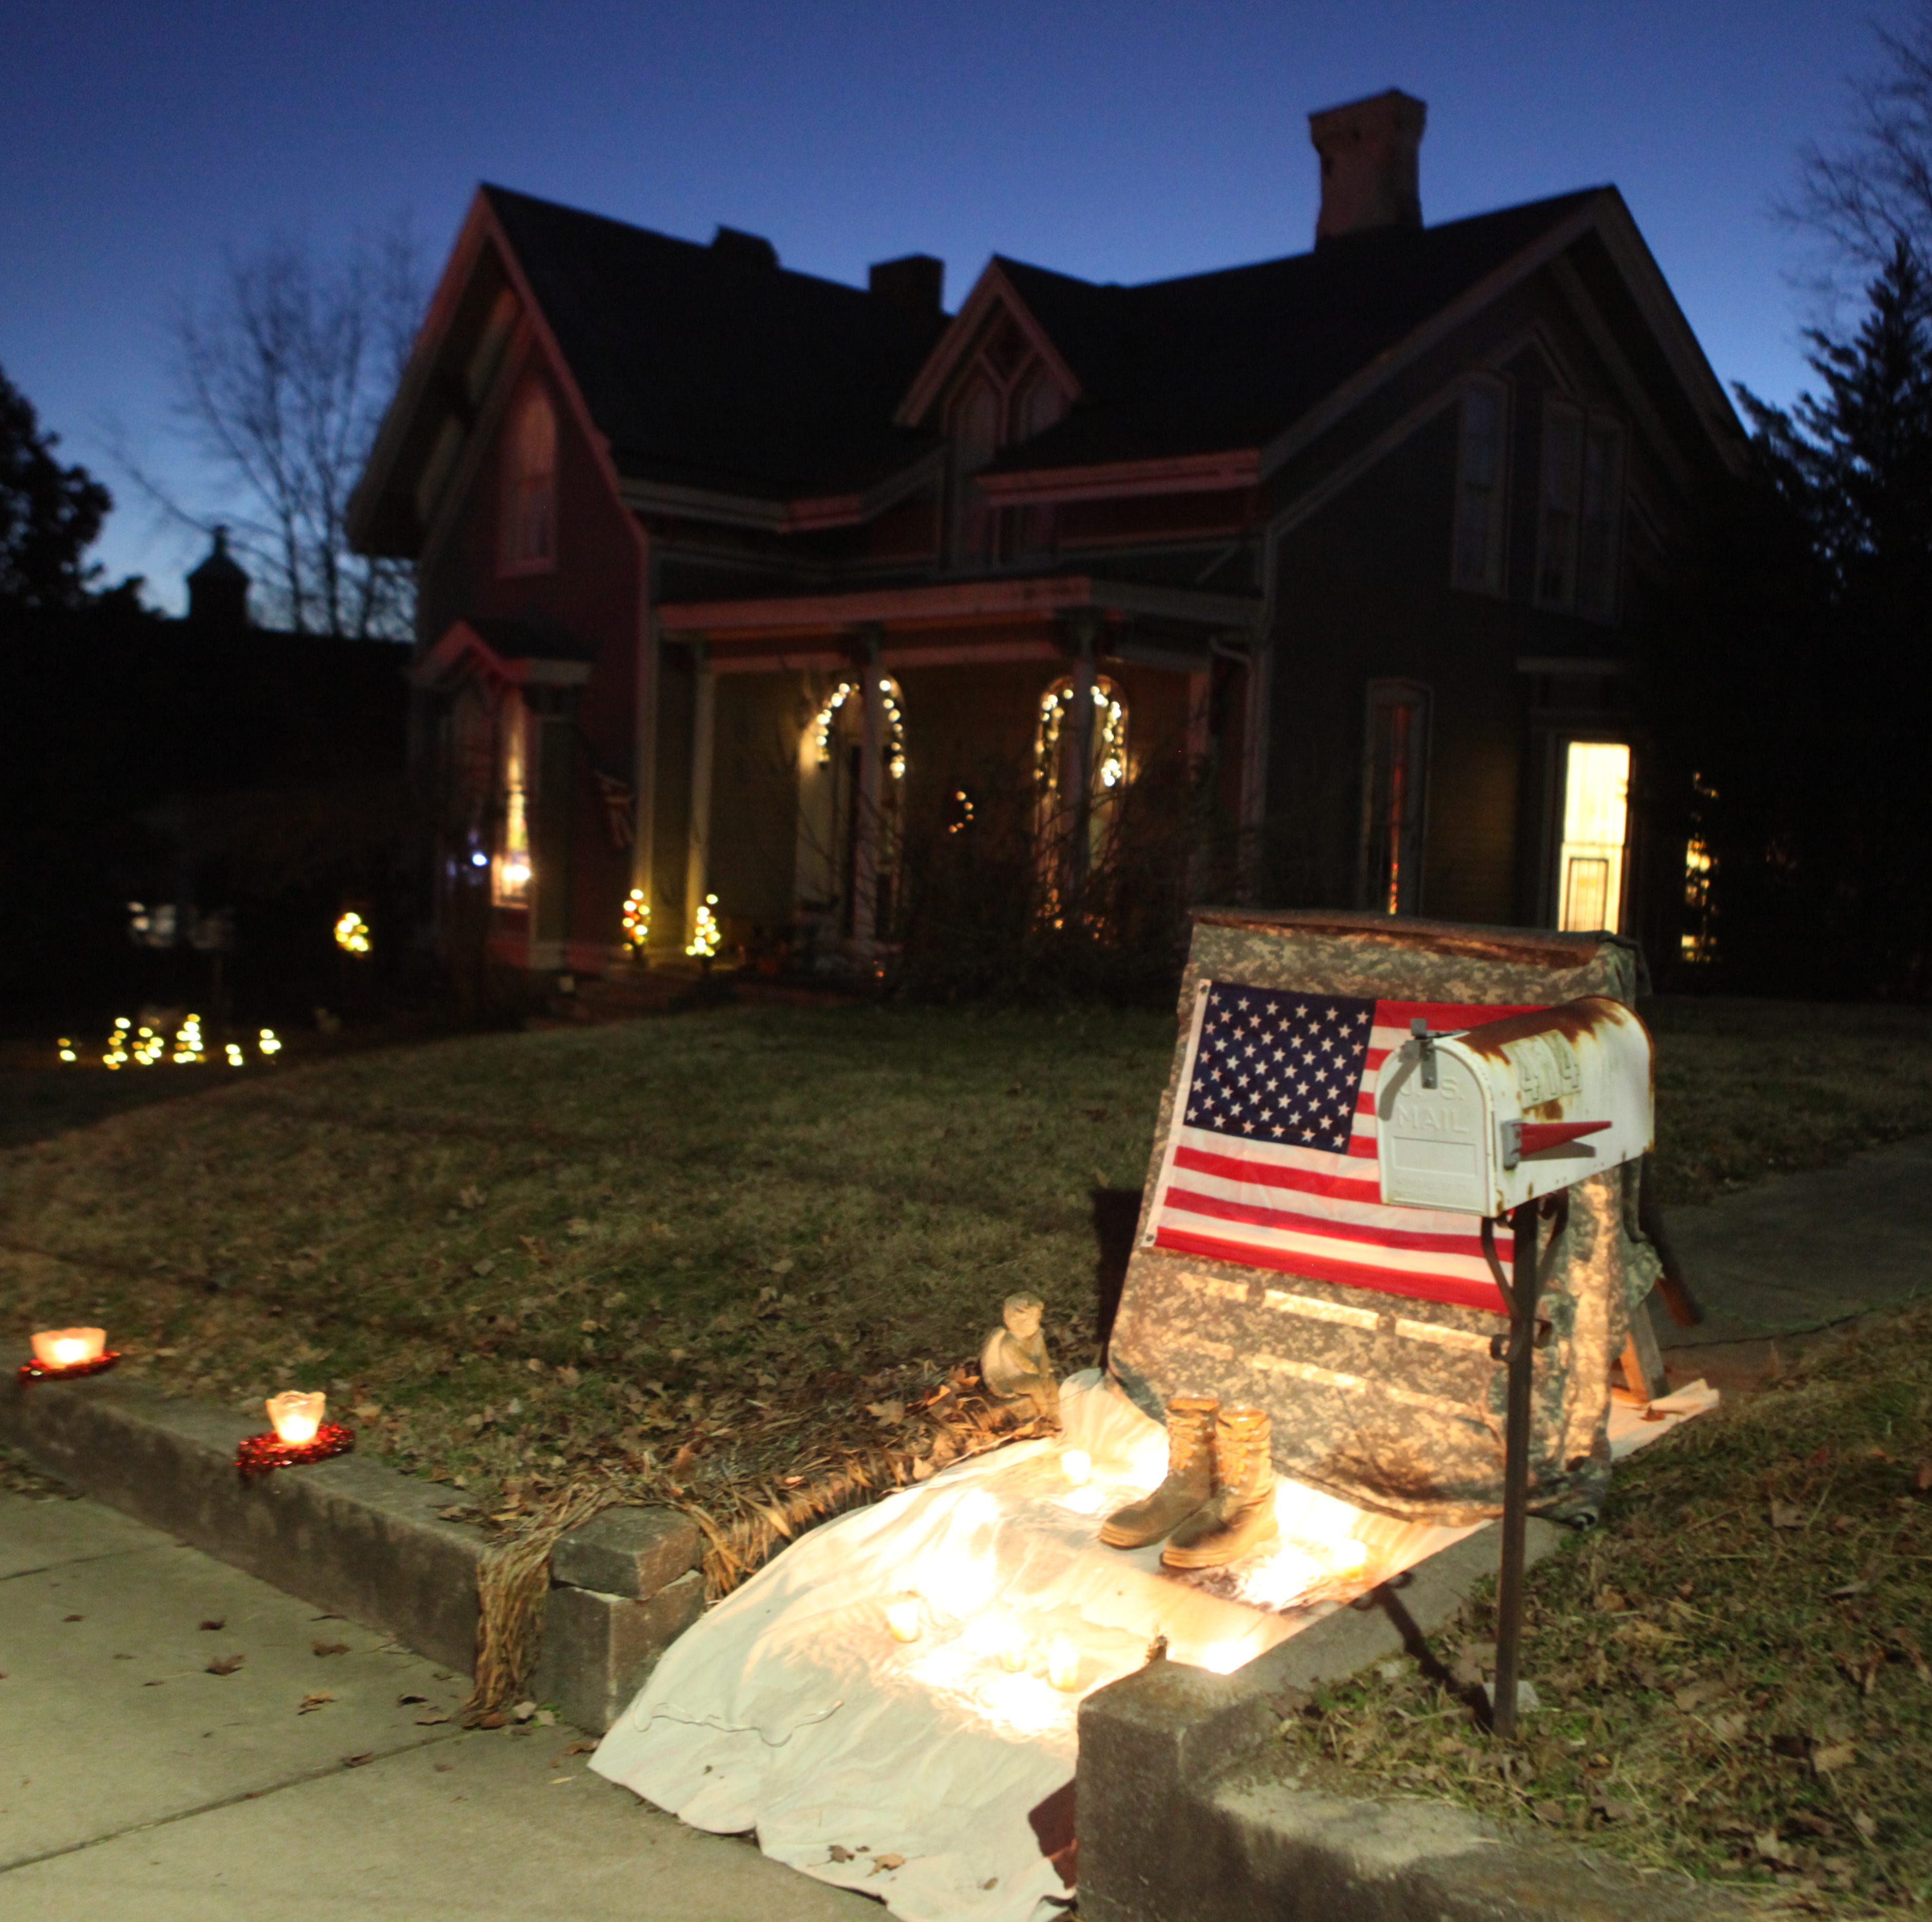 Candlelight lined the streets for Illuminating Dog Hill